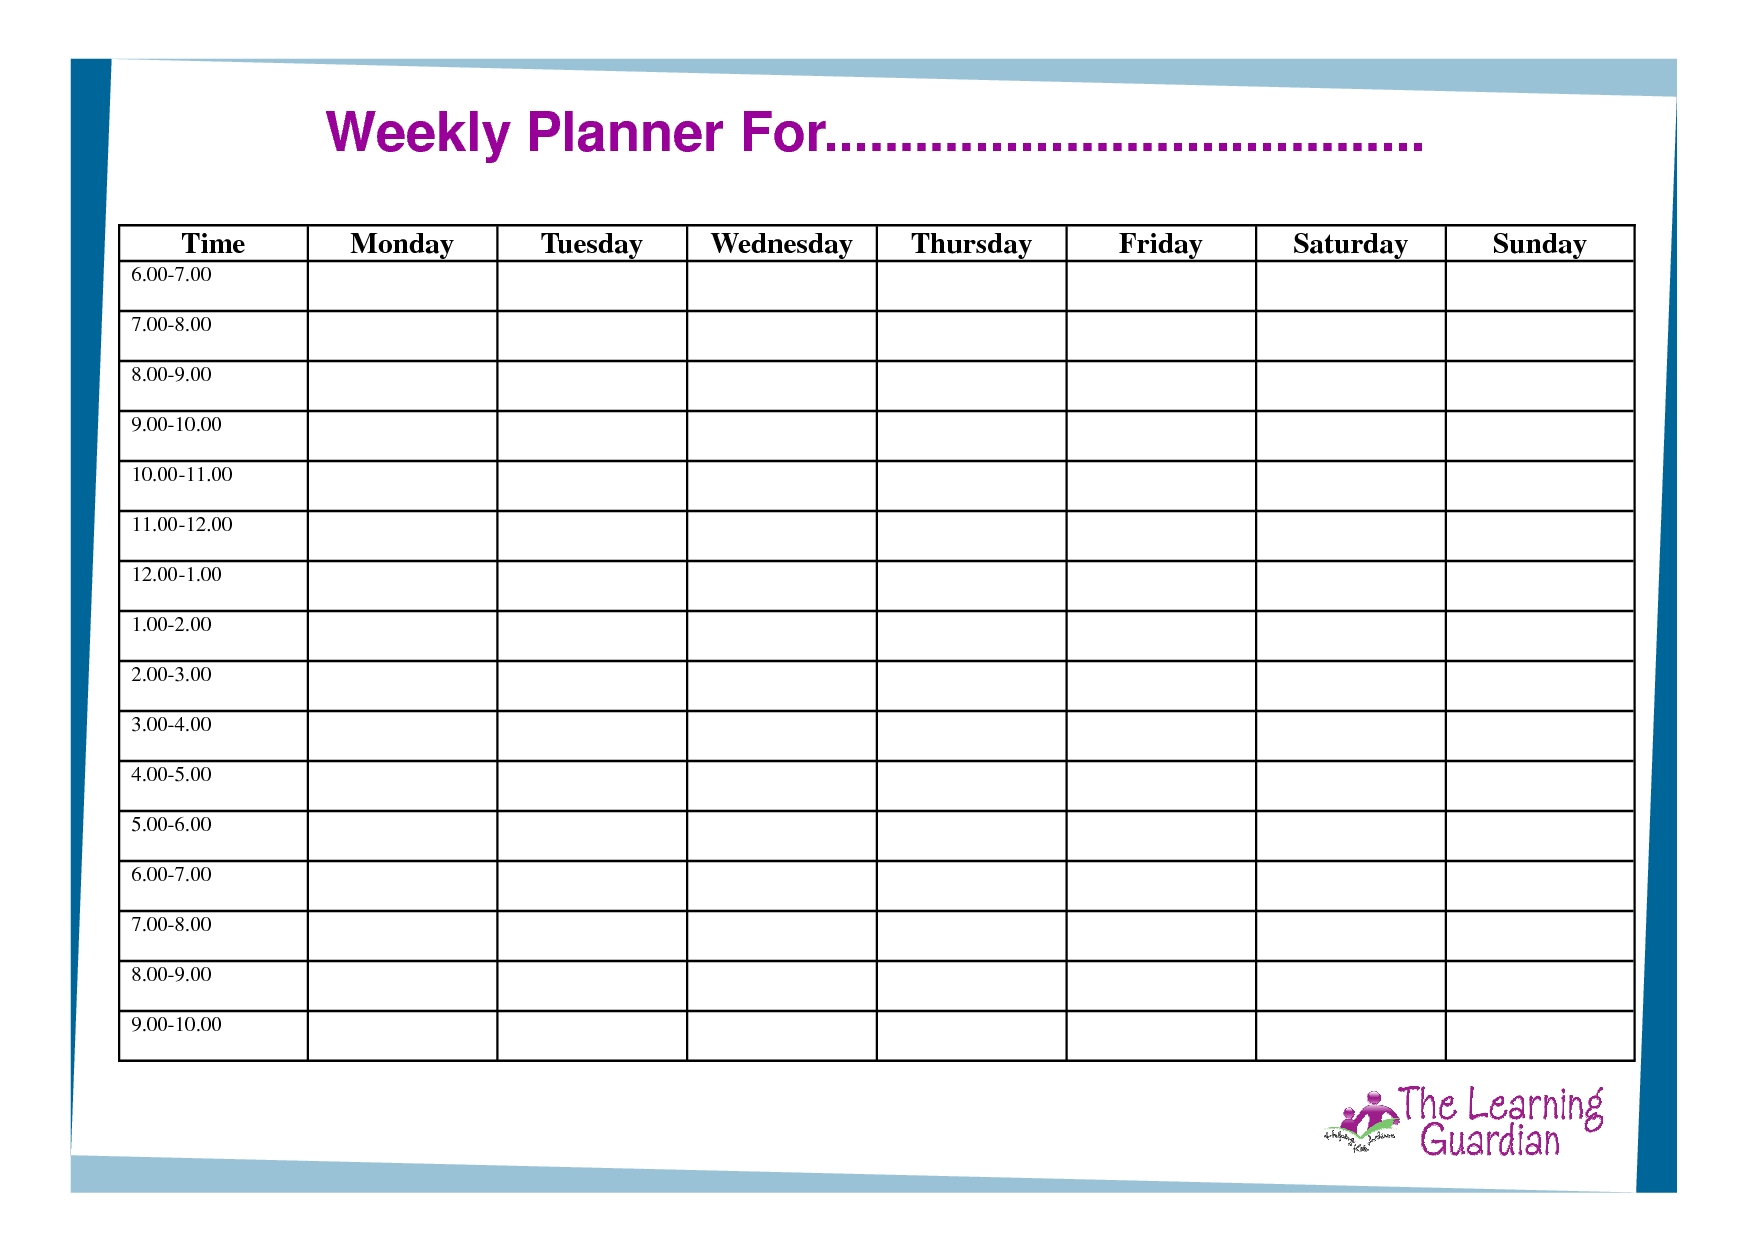 Free Printable Weekly Calendar Templates | Weekly Planner For Time within Pweakley Planner Mon To Sunday